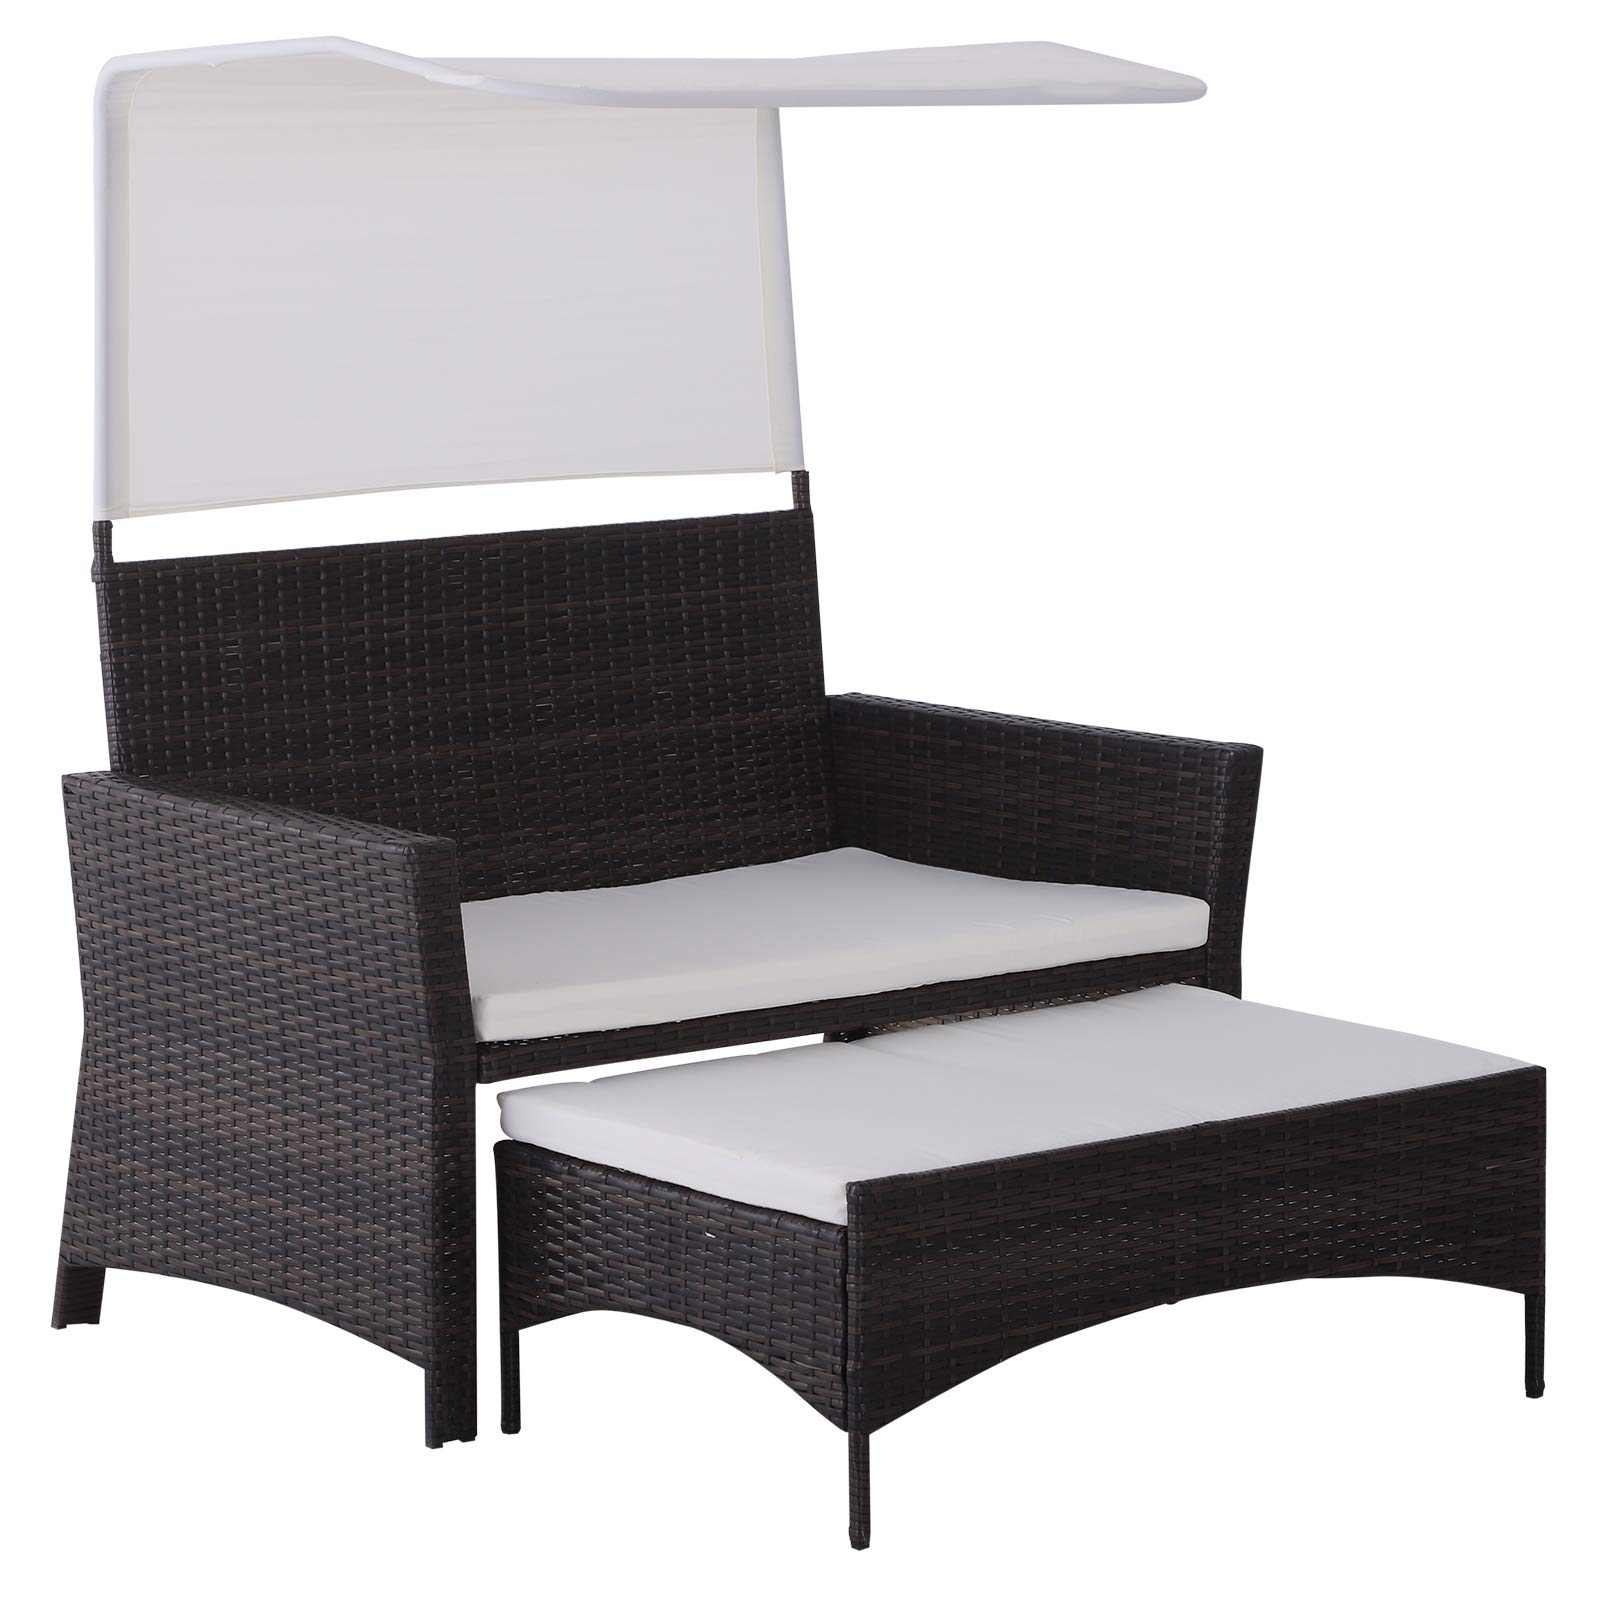 Outsunny 2 Piece Rattan Wicker Outdoor Loveseat with Sunshade Canopy and Nesting Ottoman Footrest - Brown